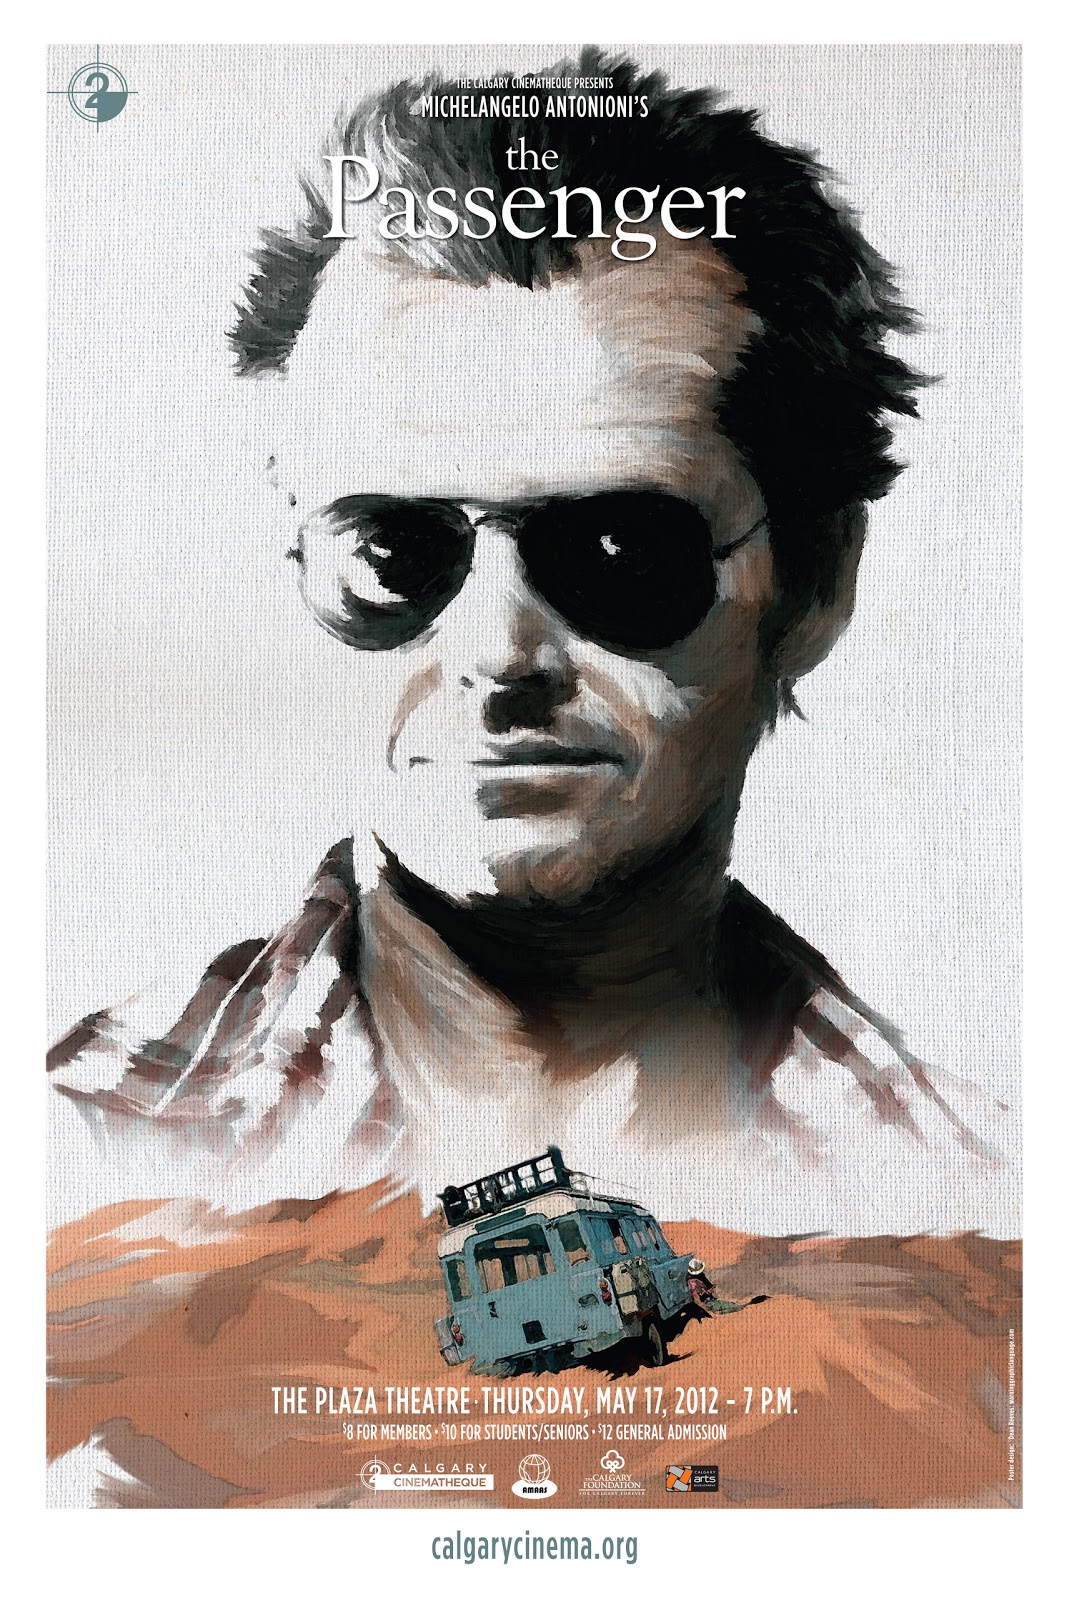 The Passenger (1975) - Directed by: Michelangelo AntonioniStarring: Jack Nicholson, Maria Schneider, Jenny Runacre, Ian HendryRated: PG-13 for Some Violence, Nudity and LanguageRunning Time: 2 h 6 mTMM Score: 4.5 stars out of 5STRENGTHS: Direction, Writing, Acting, CinematographyWEAKNESSES: Pacing